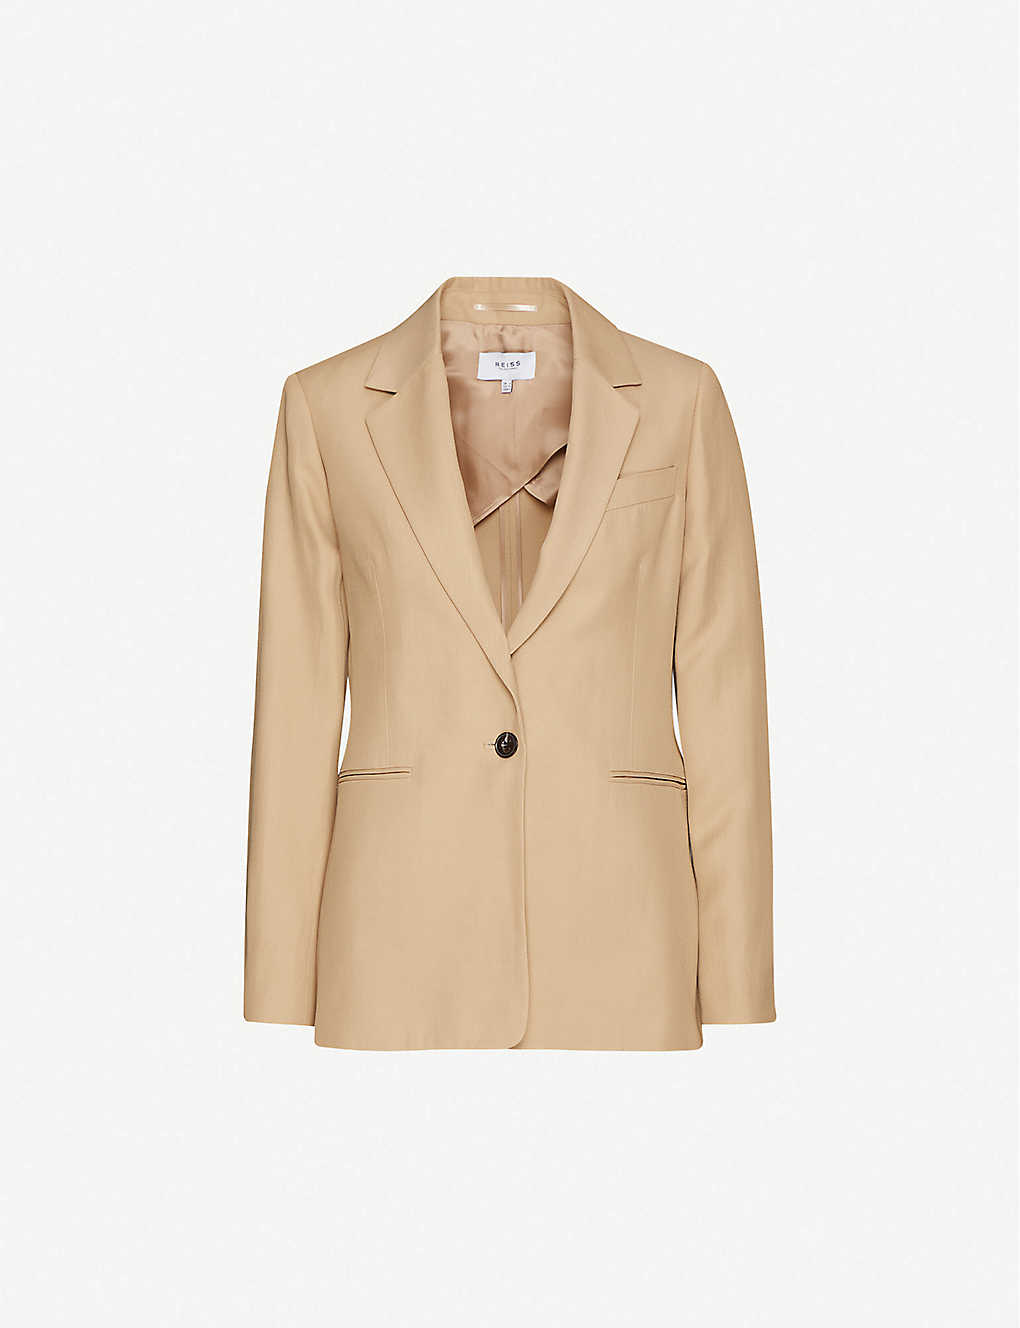 REISS: Ada single-breasted twill blazer